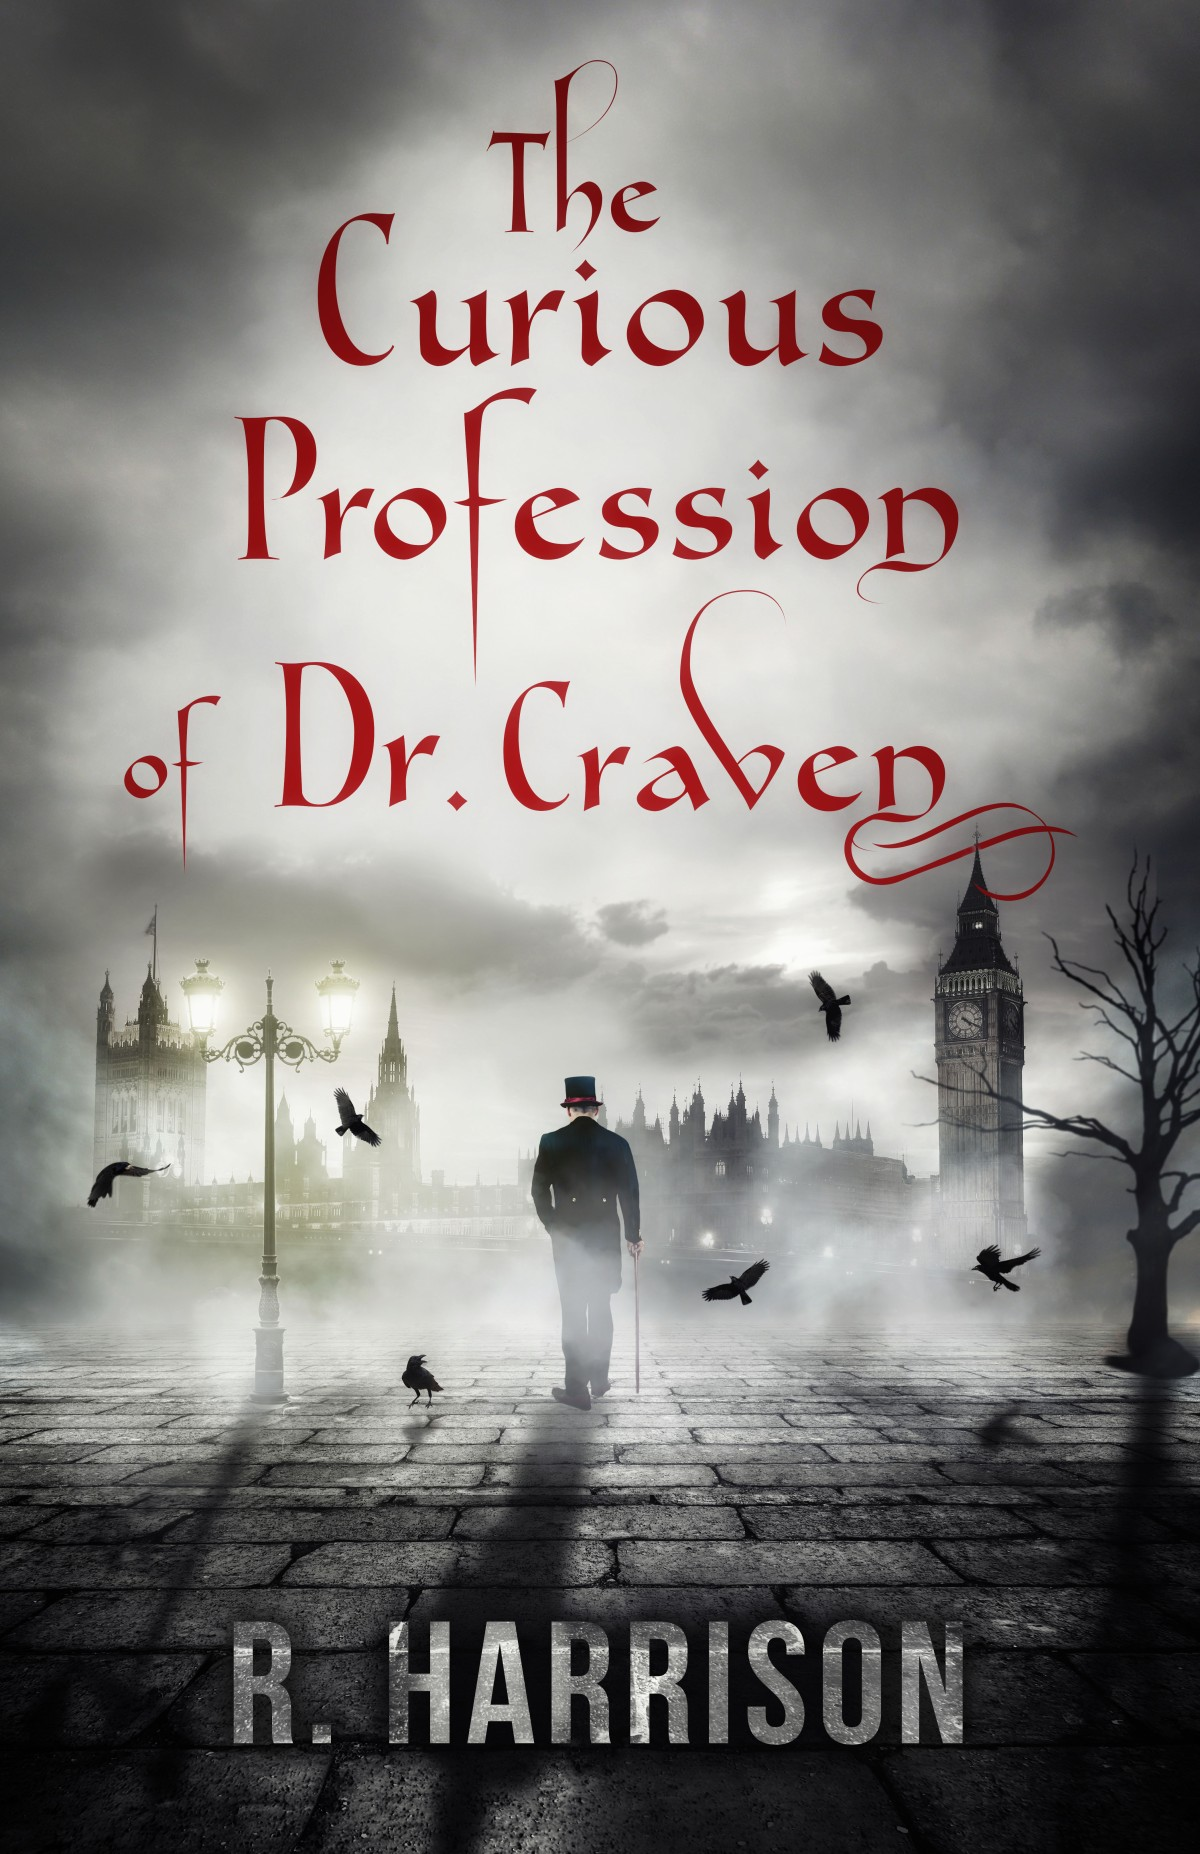 The Curious Profession of Dr. Craven – Another ******** book promo#freebook